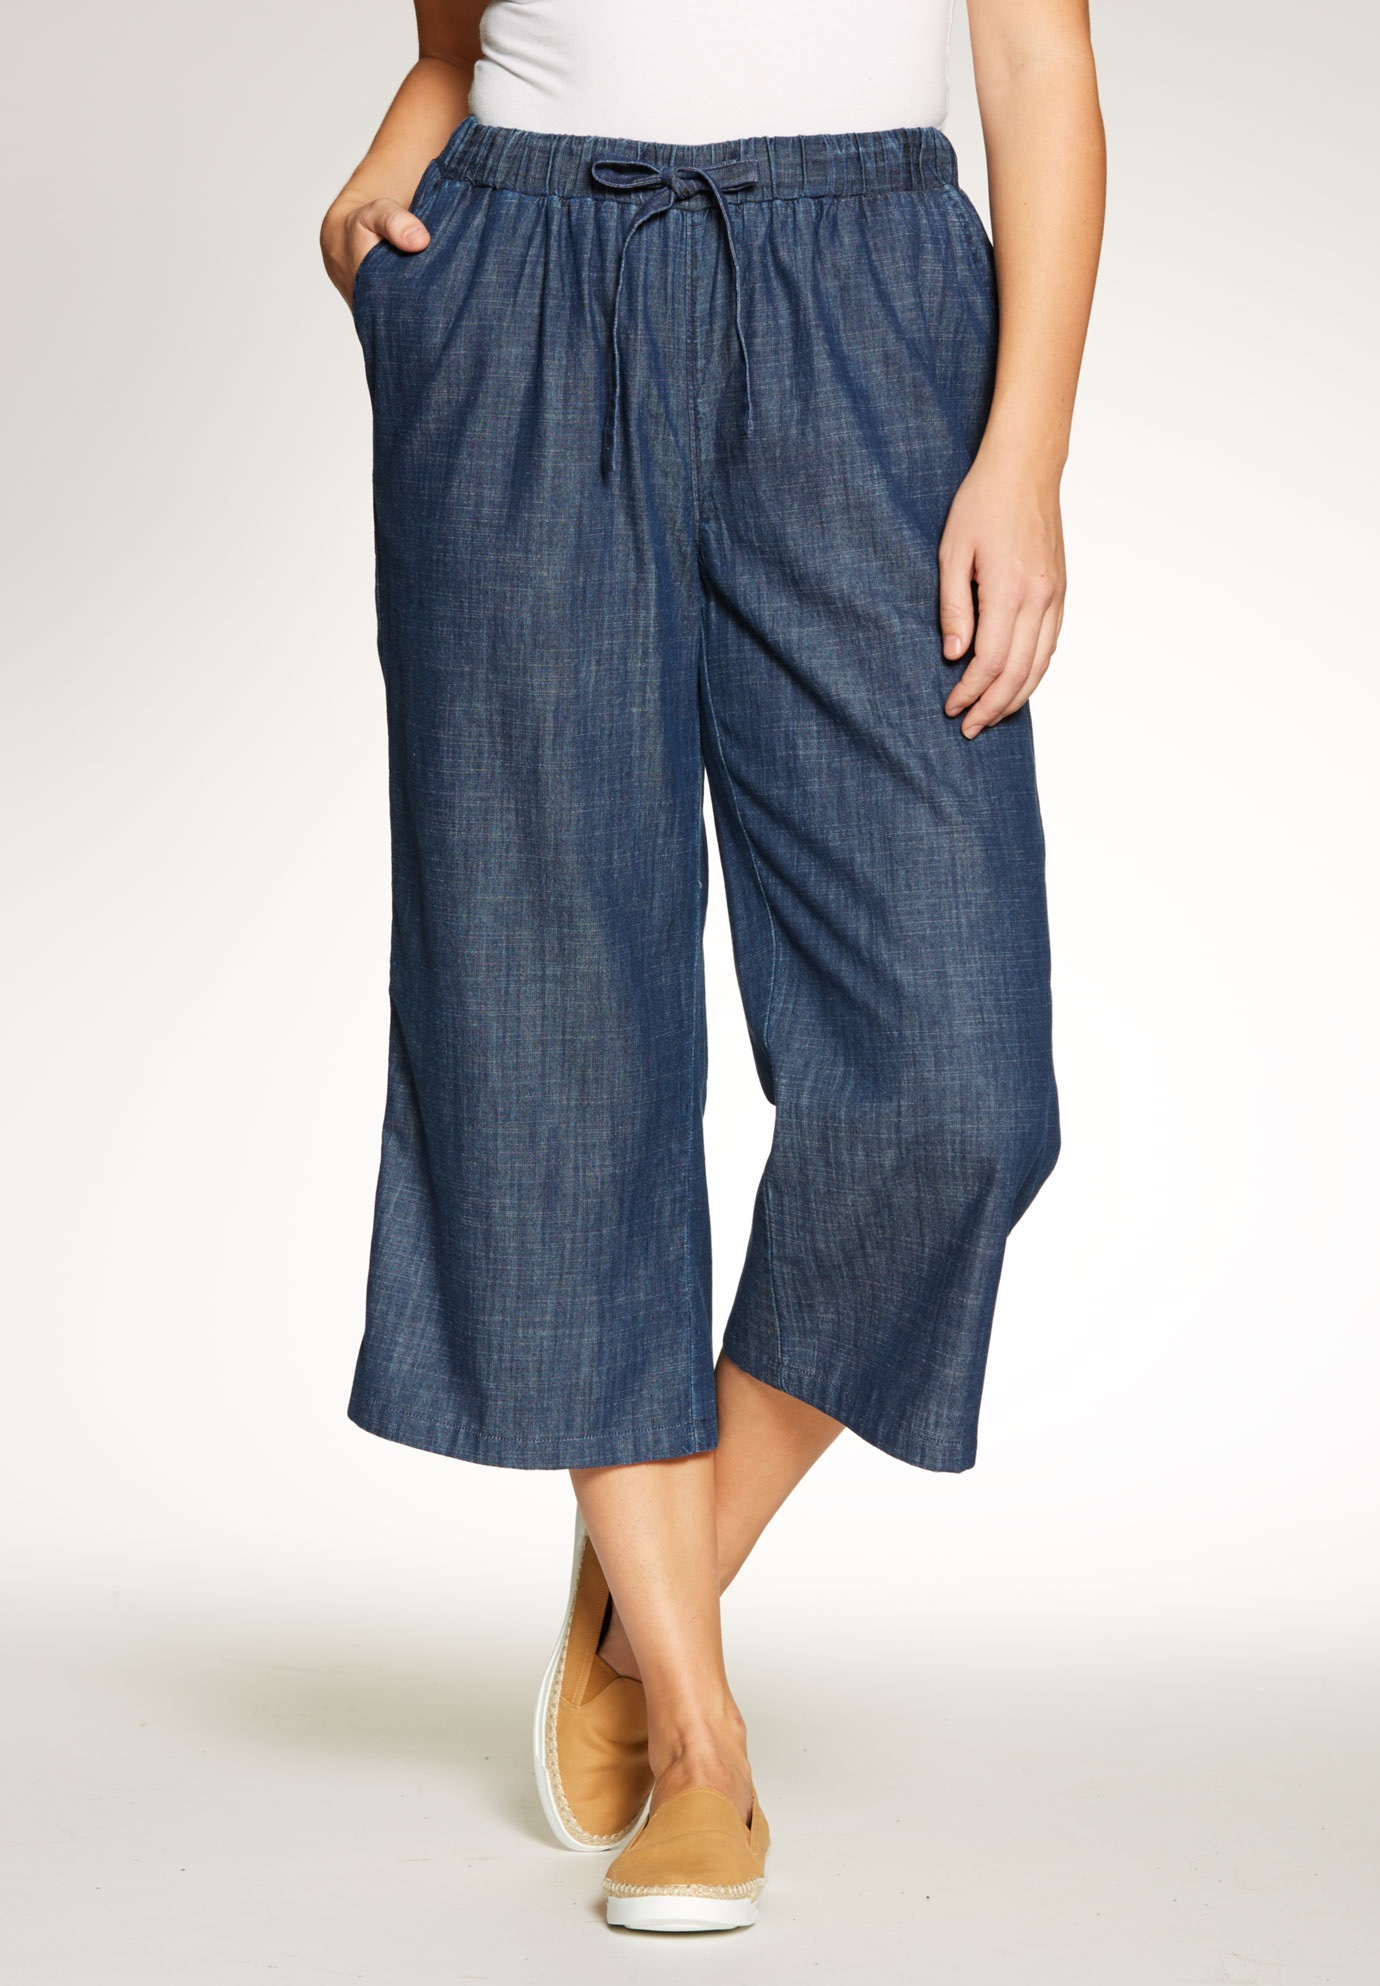 6a1cfd624d Chambray Drawstring Culottes - Women s Plus Size Clothing